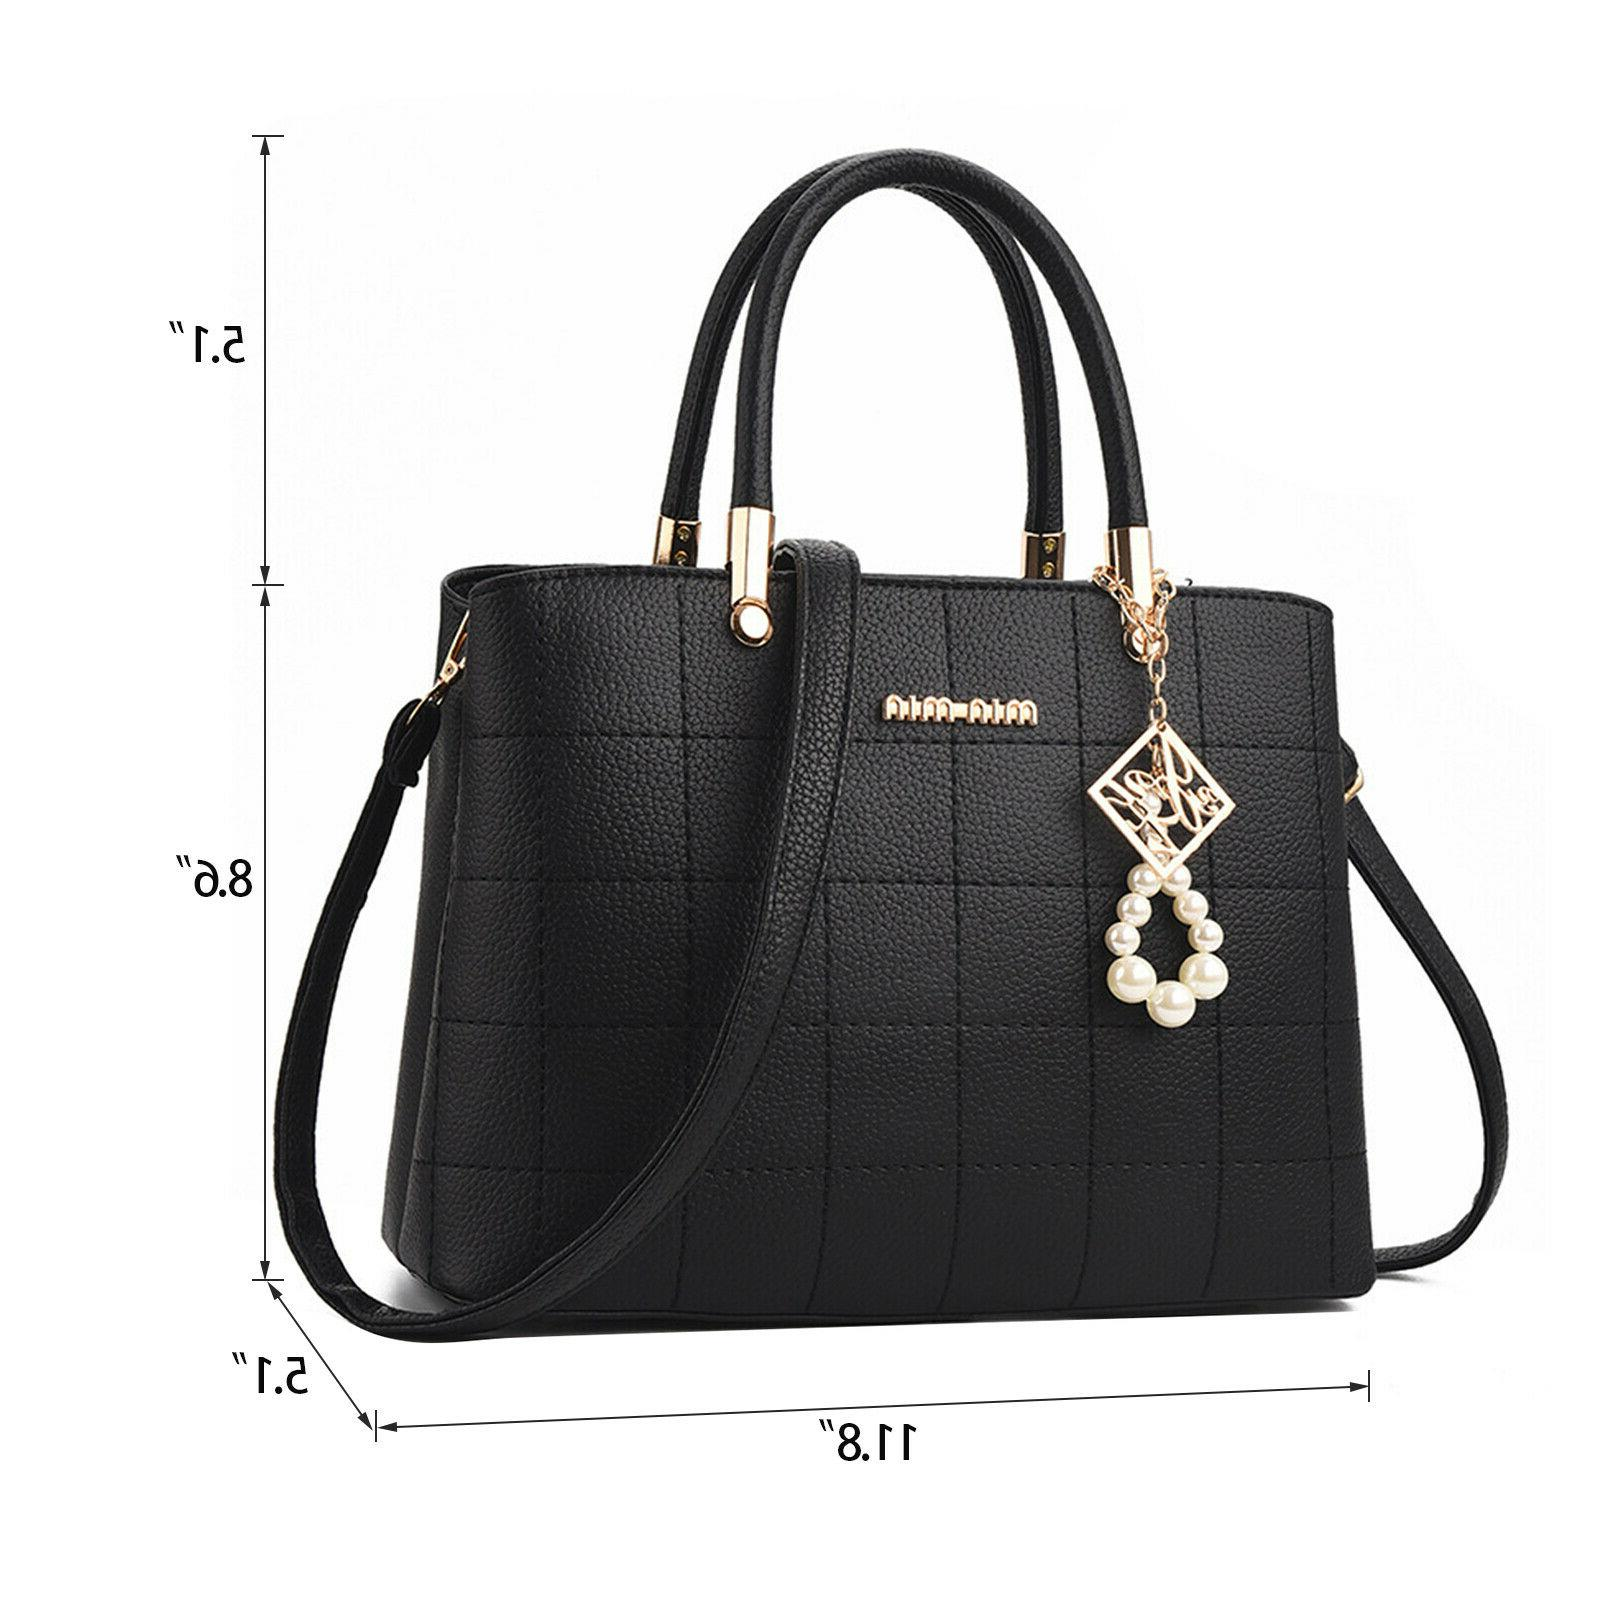 Fashion Leather Bag Purse Top